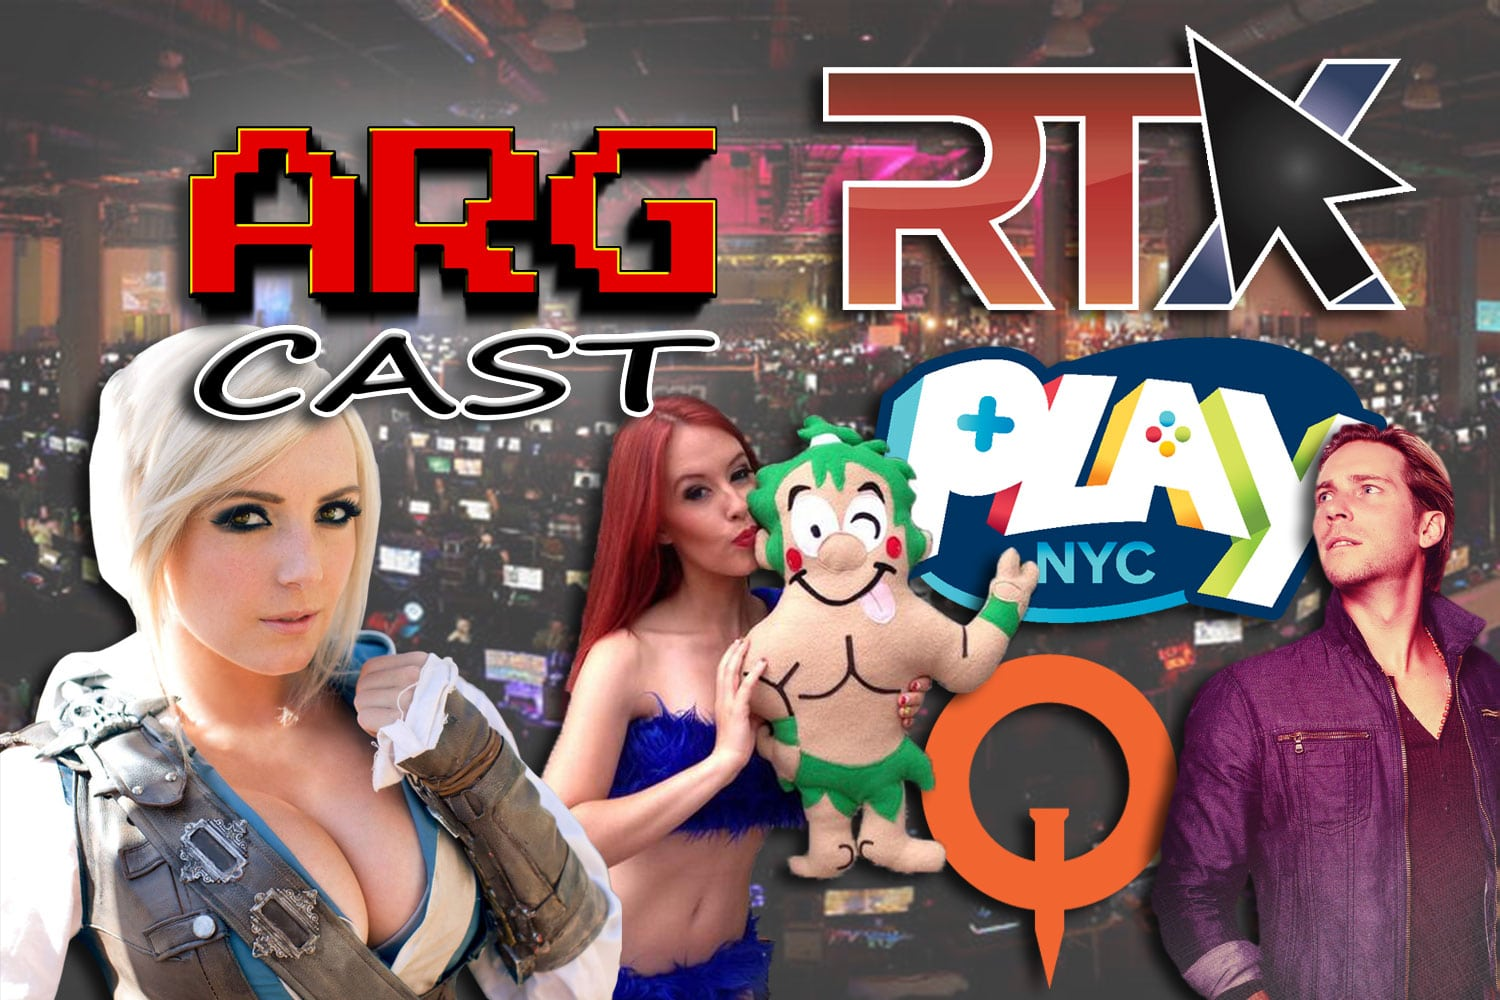 ARGcast #125: RTX, Play NYC, and QuakeCon 2018 Interviews!